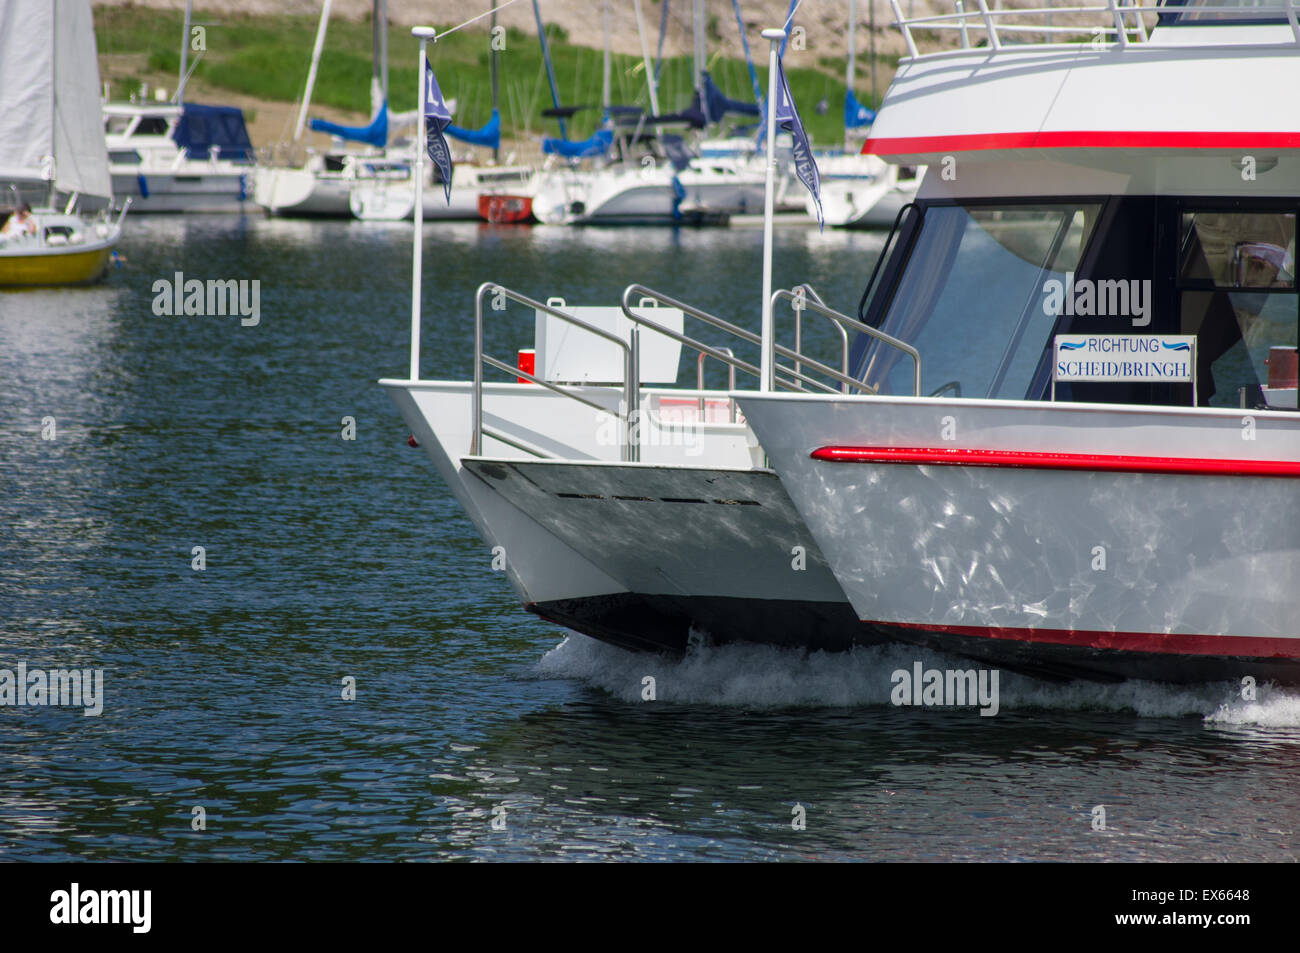 Passenger boat cutting through the water on Lake Edersee in Germany. - Stock Image